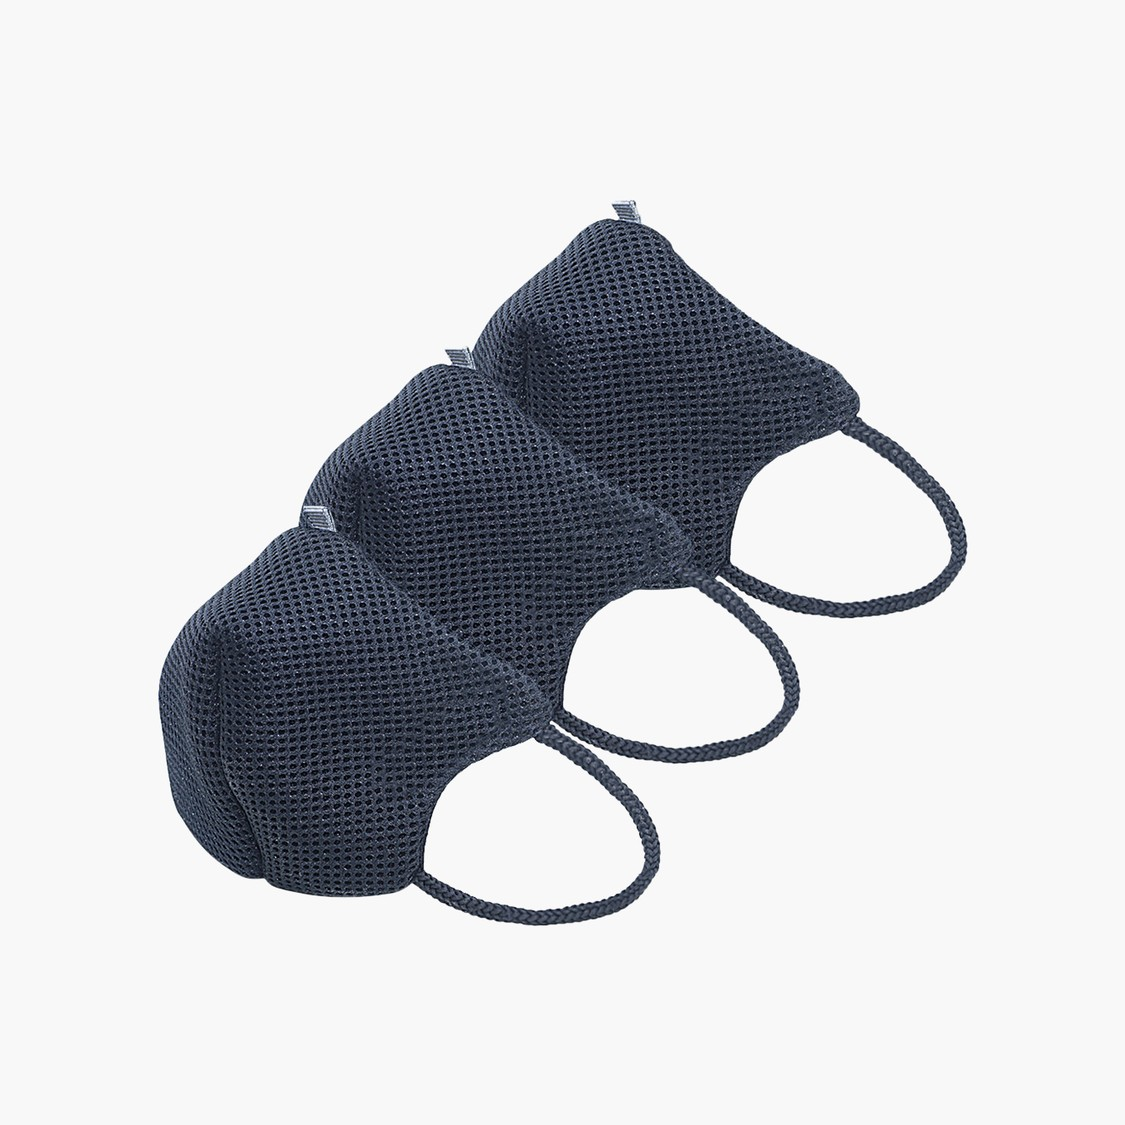 MAX Textured Face Mask- Set of 3